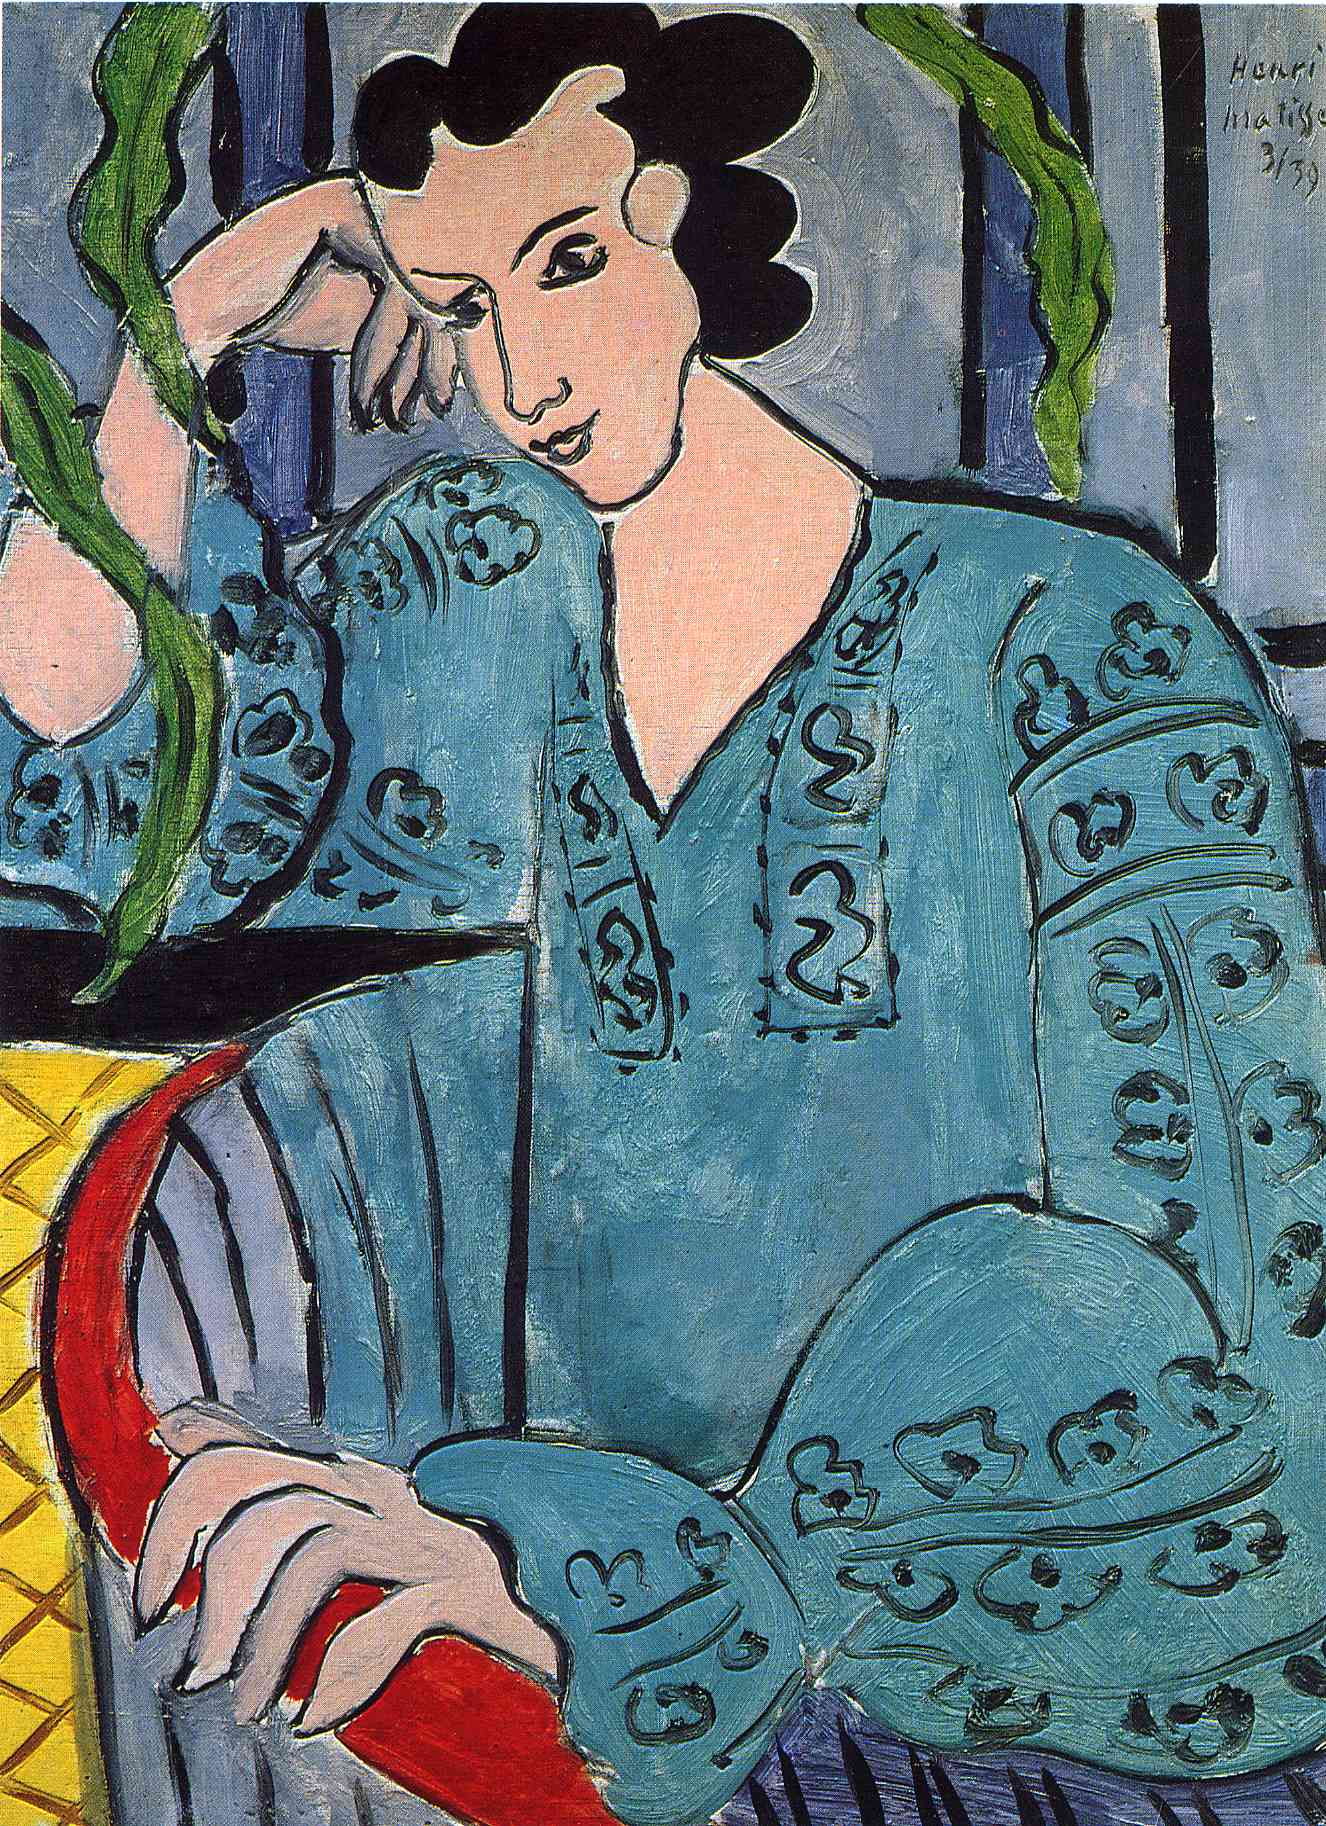 File:Henri Matisse, 1913, Portrait of the Artists Wife